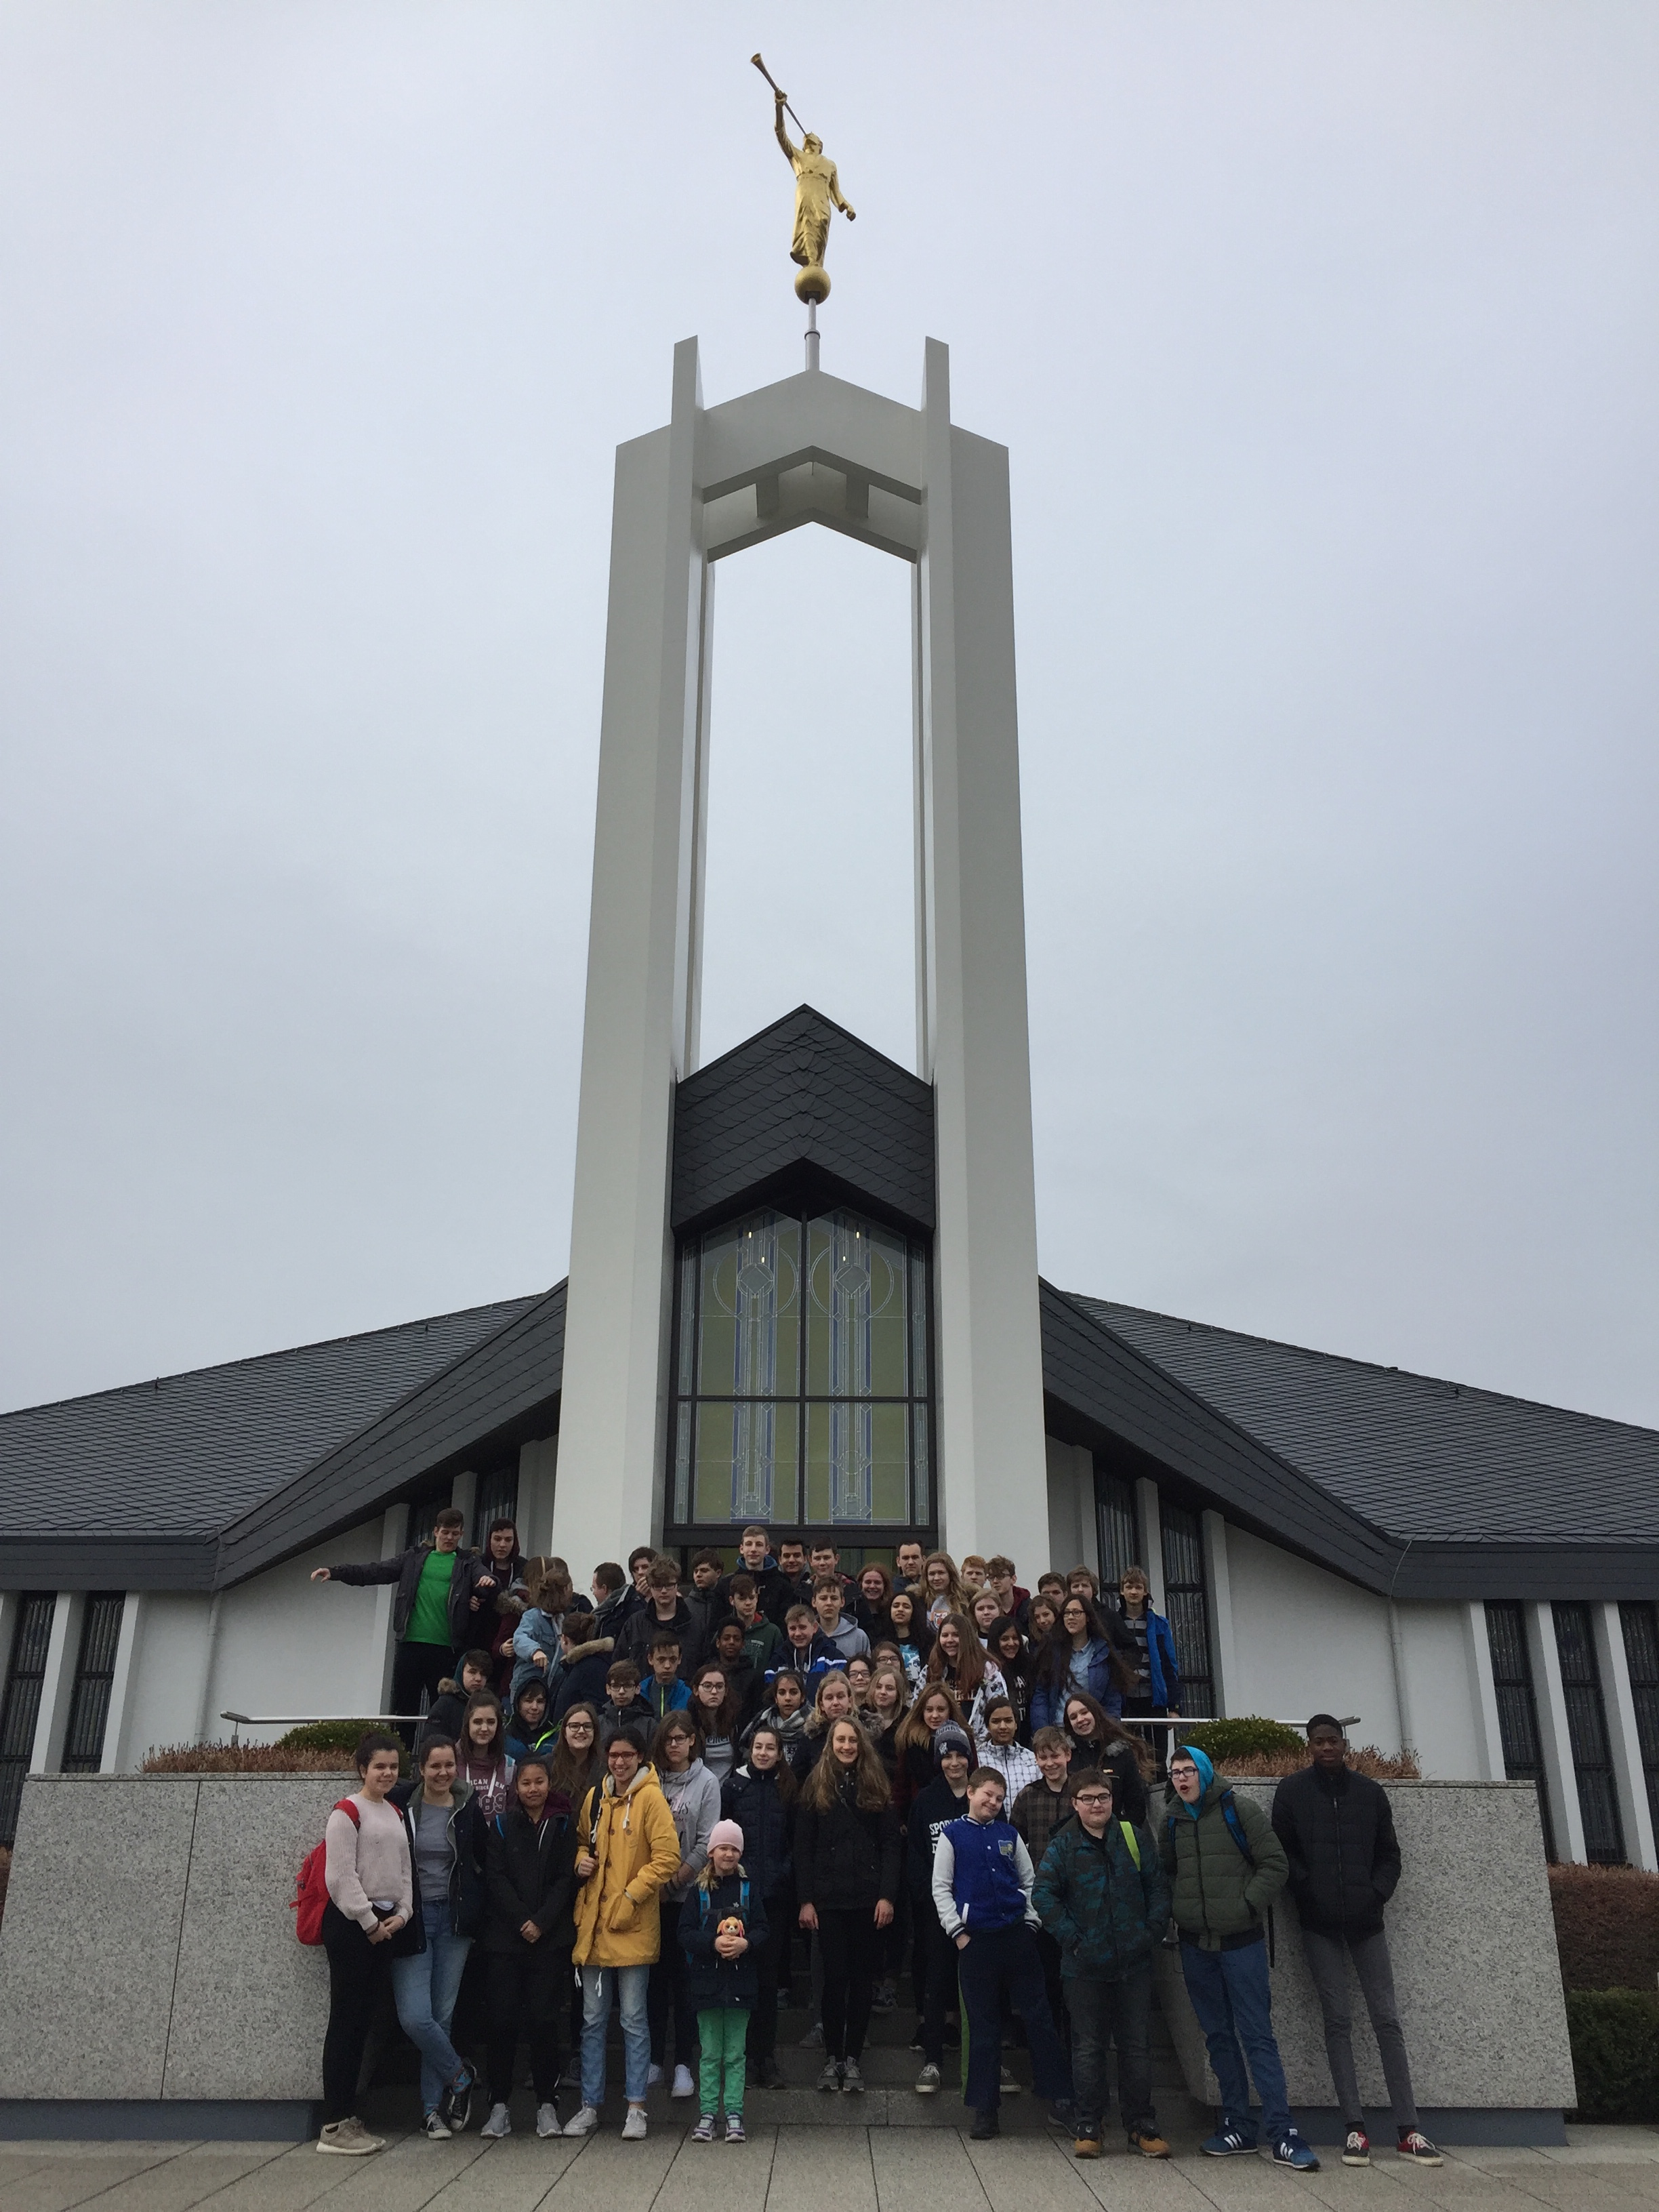 Youth of the Frankfurt Germany Stake pose for a photo outside the Freiberg Germany Temple during a stake temple trip.